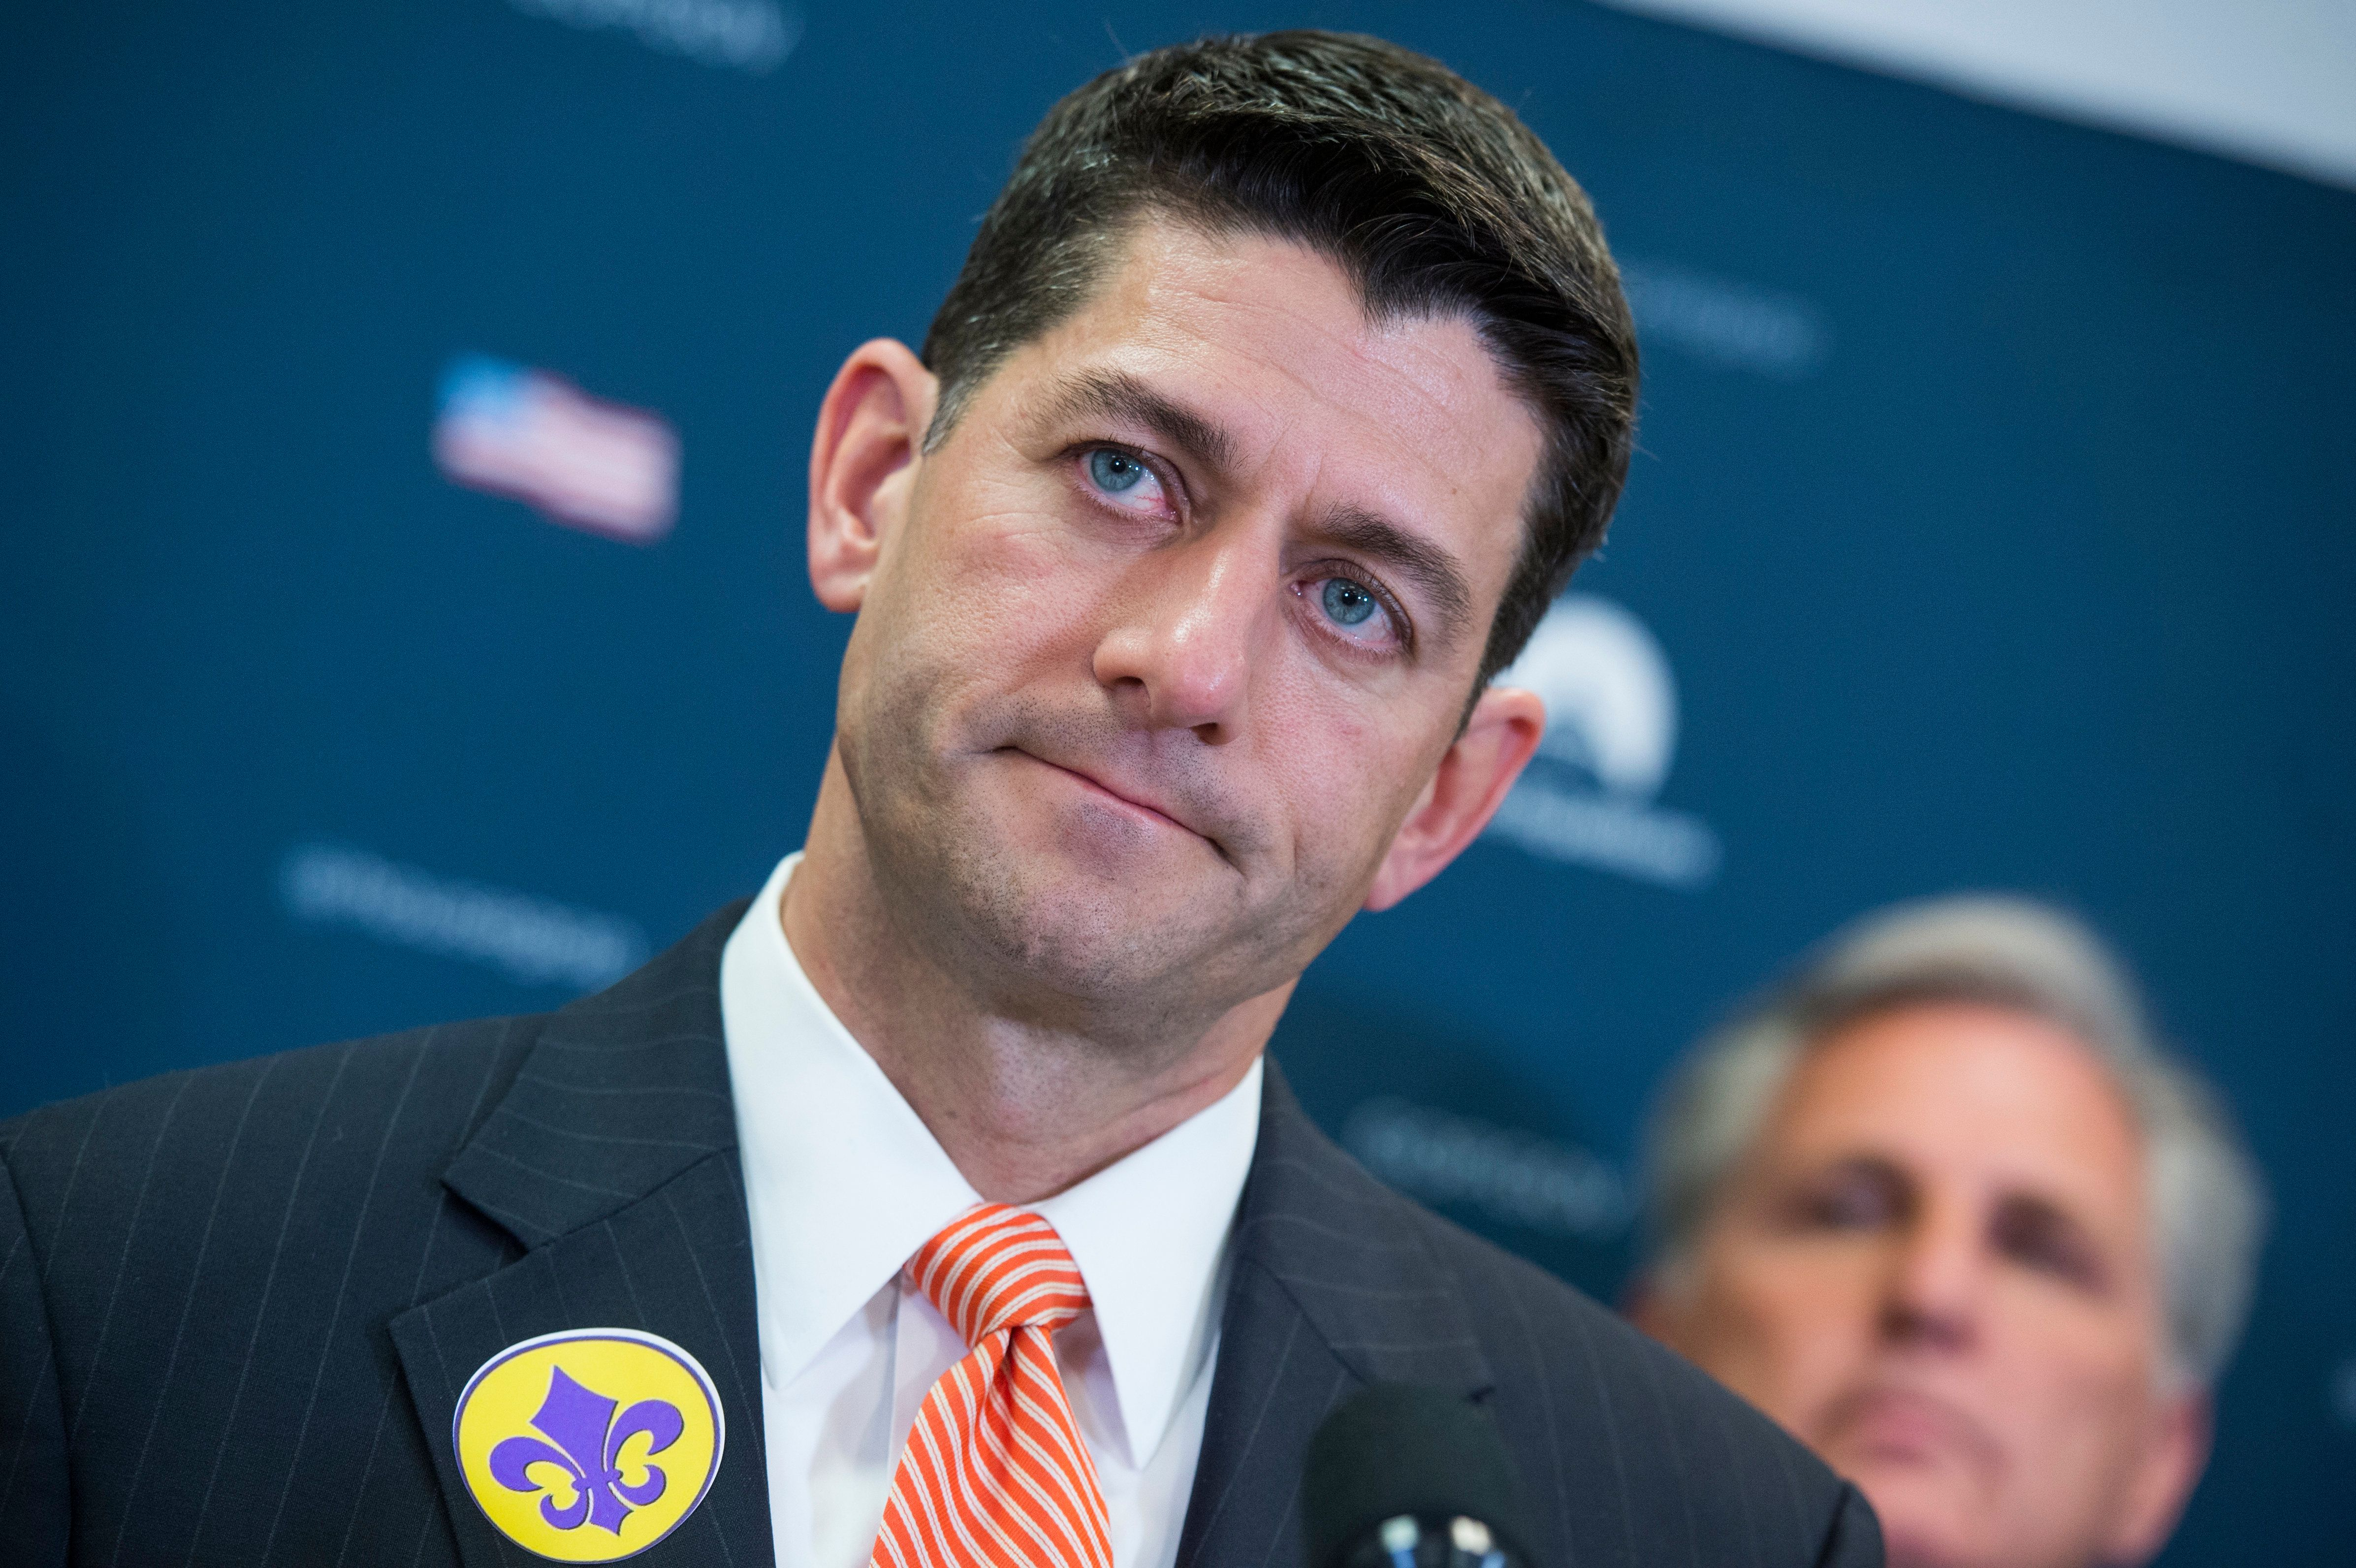 UNITED STATES - JUNE 21: Speaker of the House Paul Ryan, R-Wis., conducts a news conference in the Capitol after a meeting of the House Republican Conference on June 21, 2017. Members wore fleur-de-lis stickers to honor House Majority Whip Steve Scalise, R-La., who was injured in last week's shooting at the Republican baseball practice.(Photo By Tom Williams/CQ Roll Call)